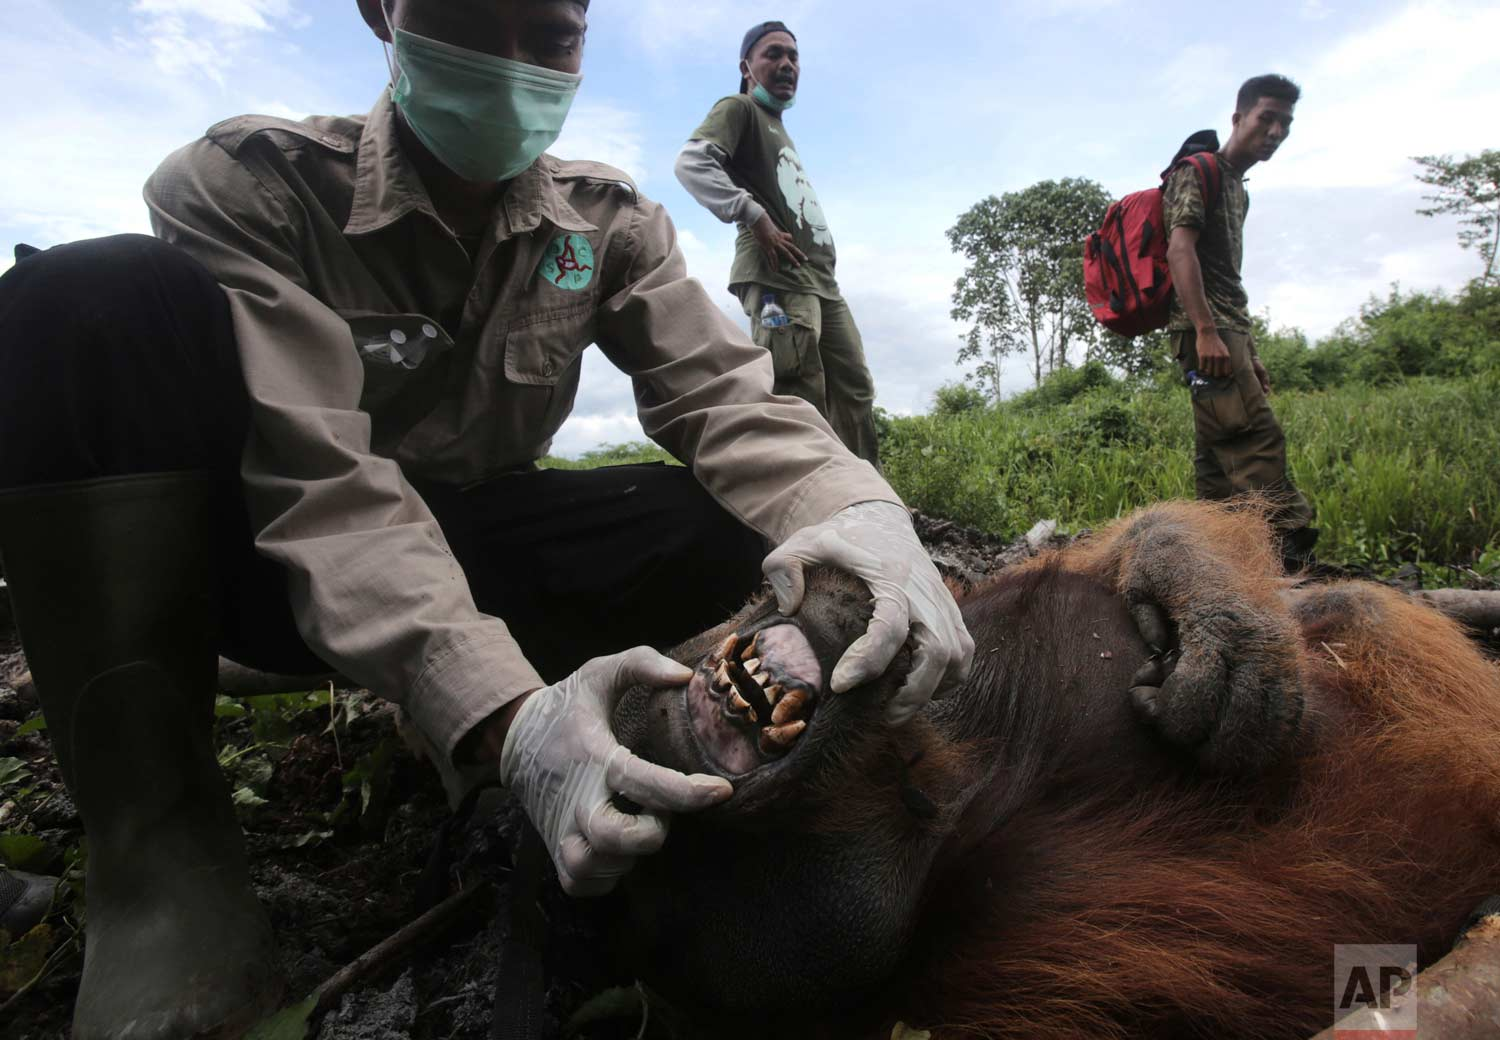 """In this Thursday, Aug. 10, 2017 photo, Pandu Wibisono, a veterinarian of the Sumatran Orangutan Conservation Program (SOCP), examines a tranquilized male orangutan being rescued from a forest located too close to a palm oil plantation at Tripa peat swamp in Aceh province, Indonesia. Conservationists relocated the orangutan they named """"Black"""" to a reintroduction center in Jantho, Aceh Besar, where he will join about 100 other primates that have been released in the jungle there to establish a new wild population. (AP Photo/Binsar Bakkara)"""